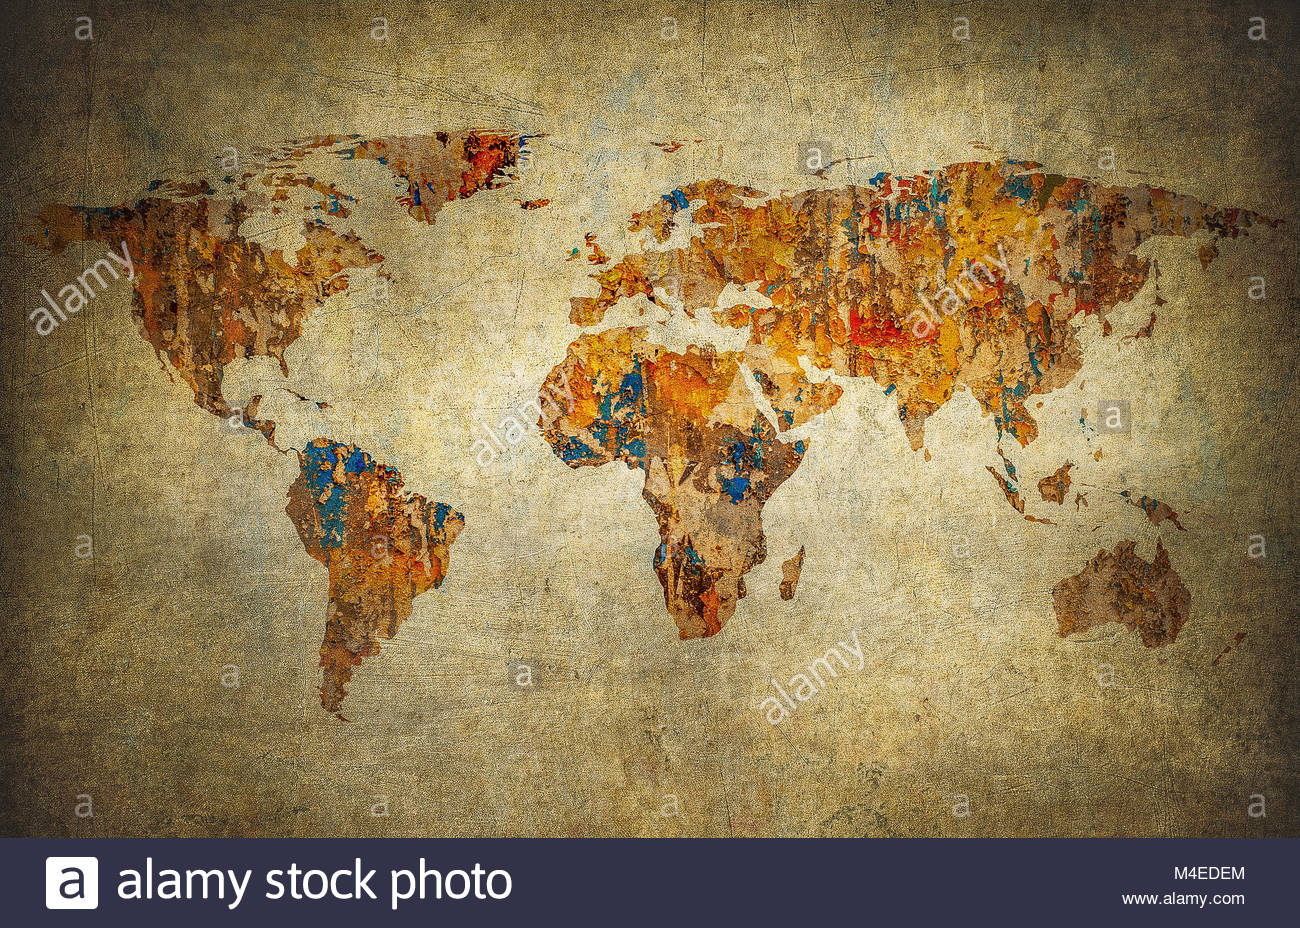 grunge map of the world - Stock Image